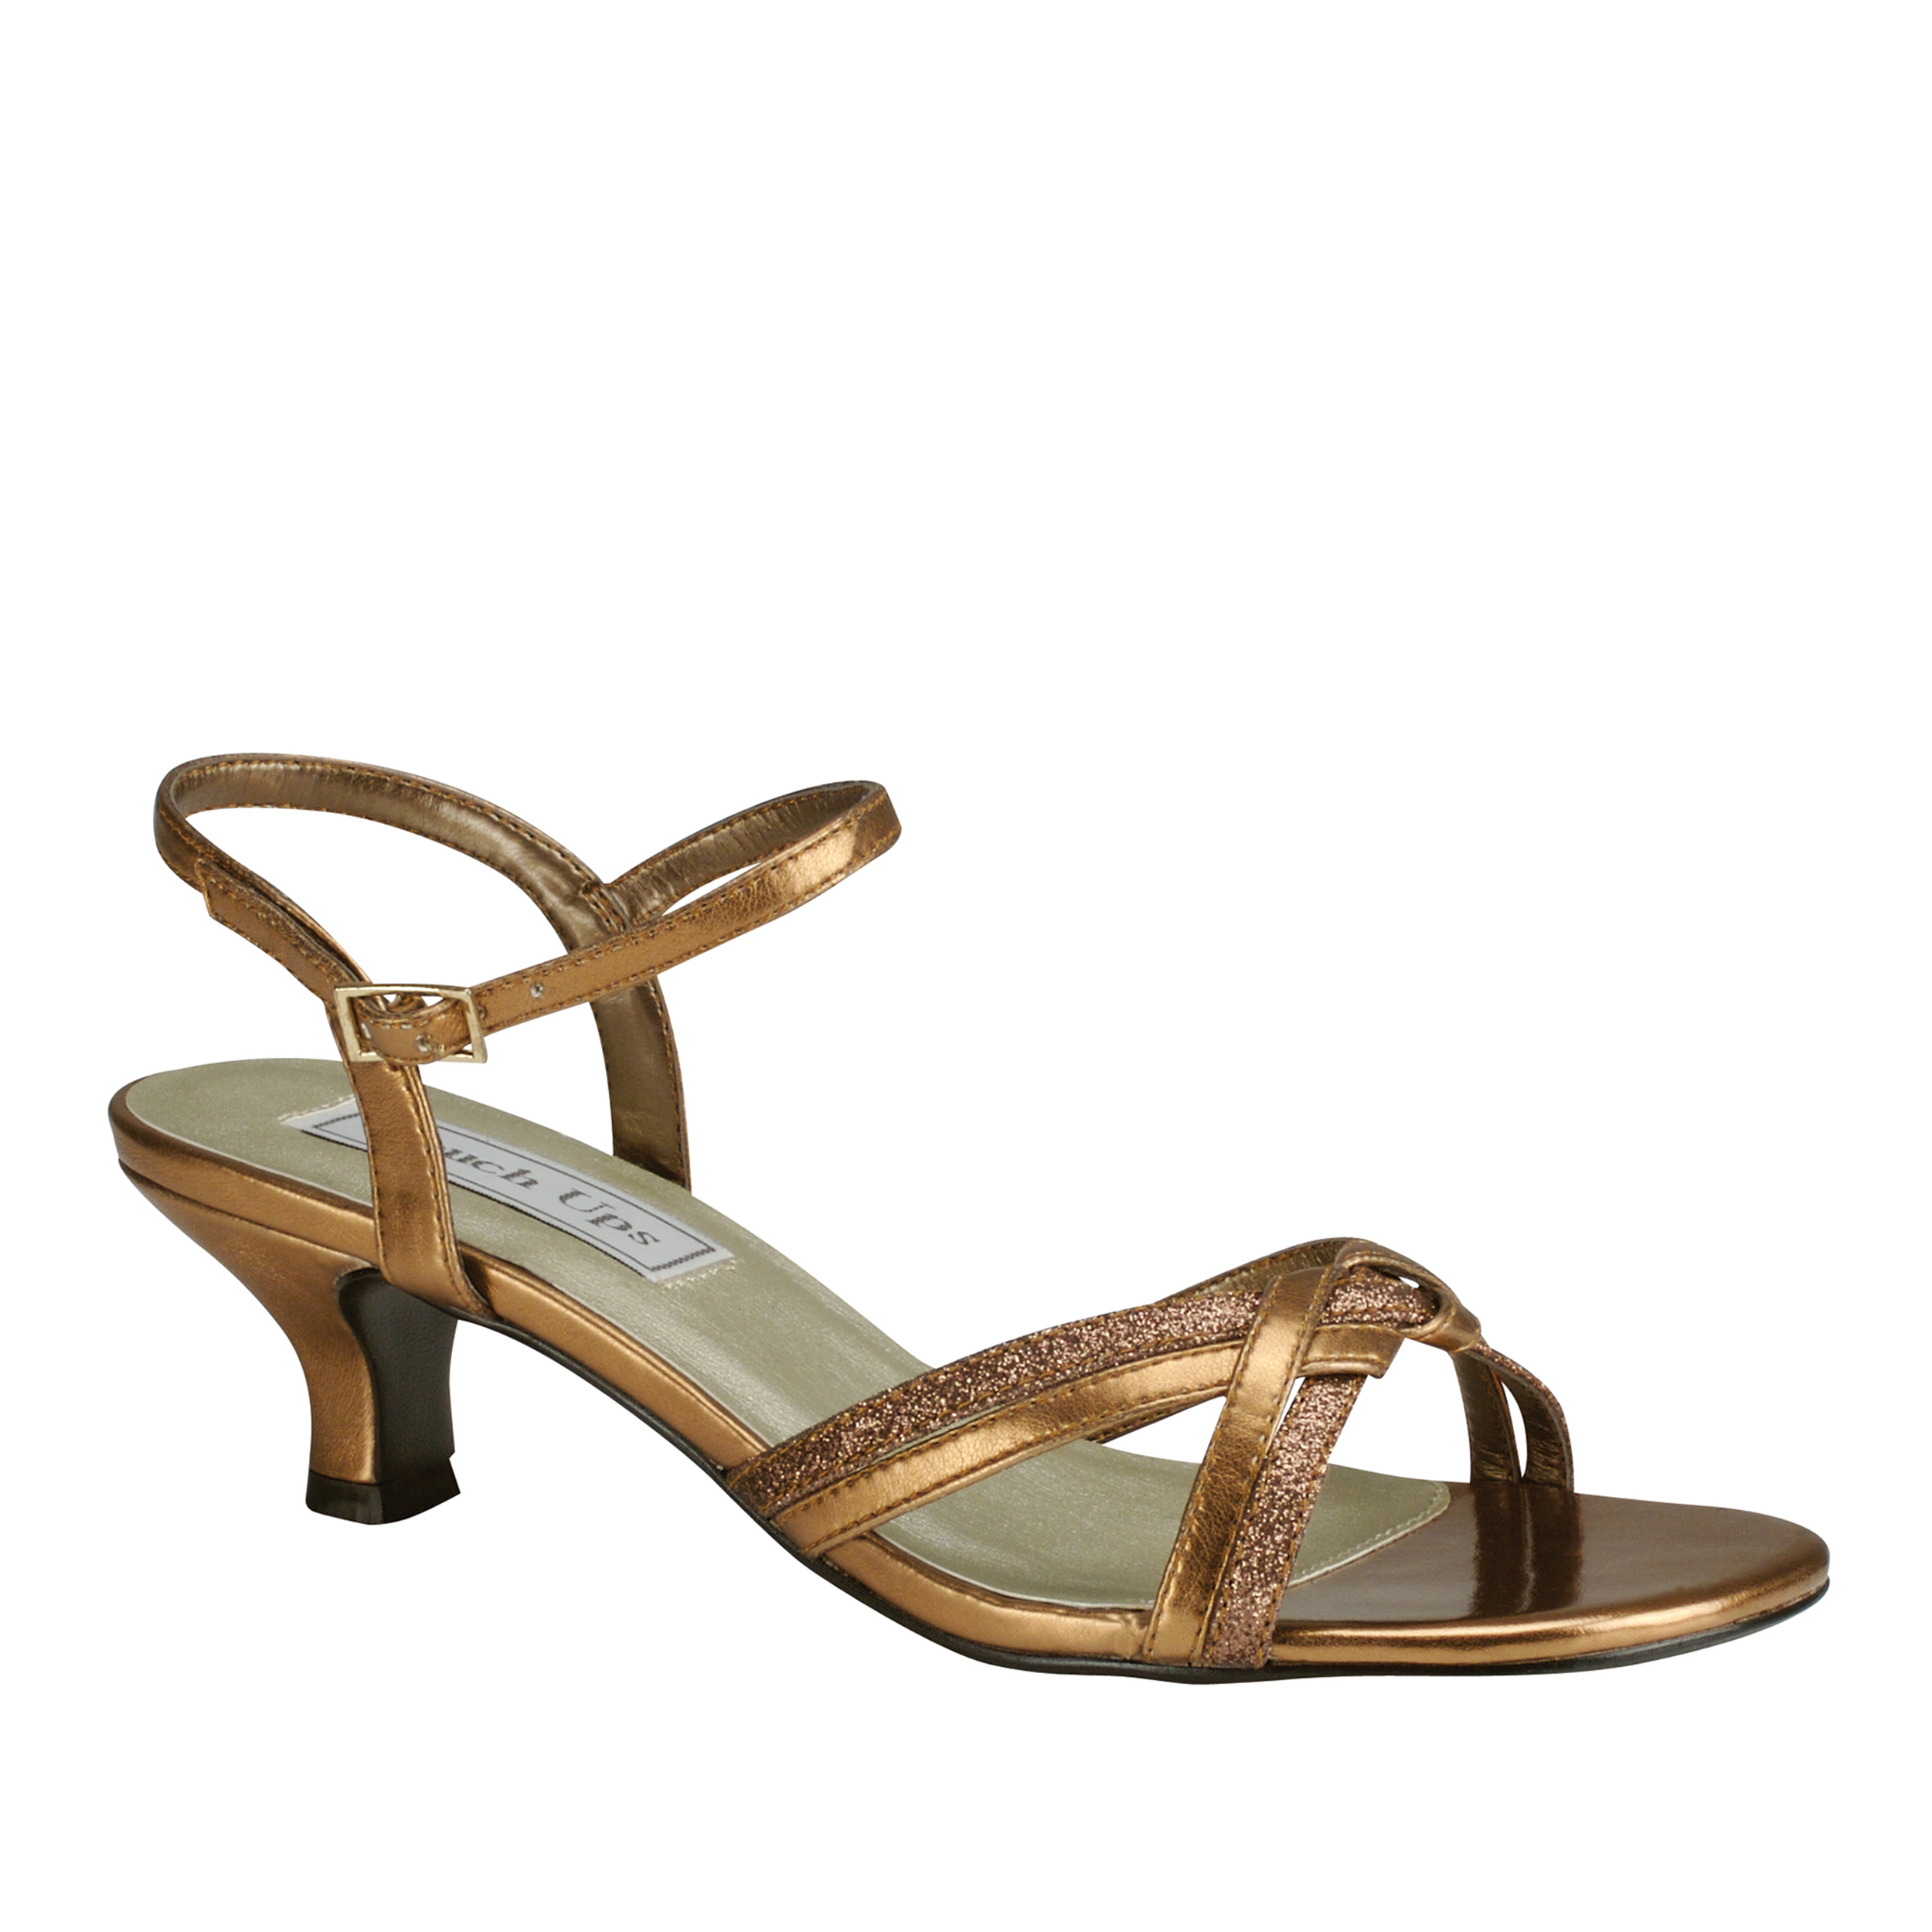 Touch Ups Melanie Womens Bronze Sandals 11 M by Benjamin Walk